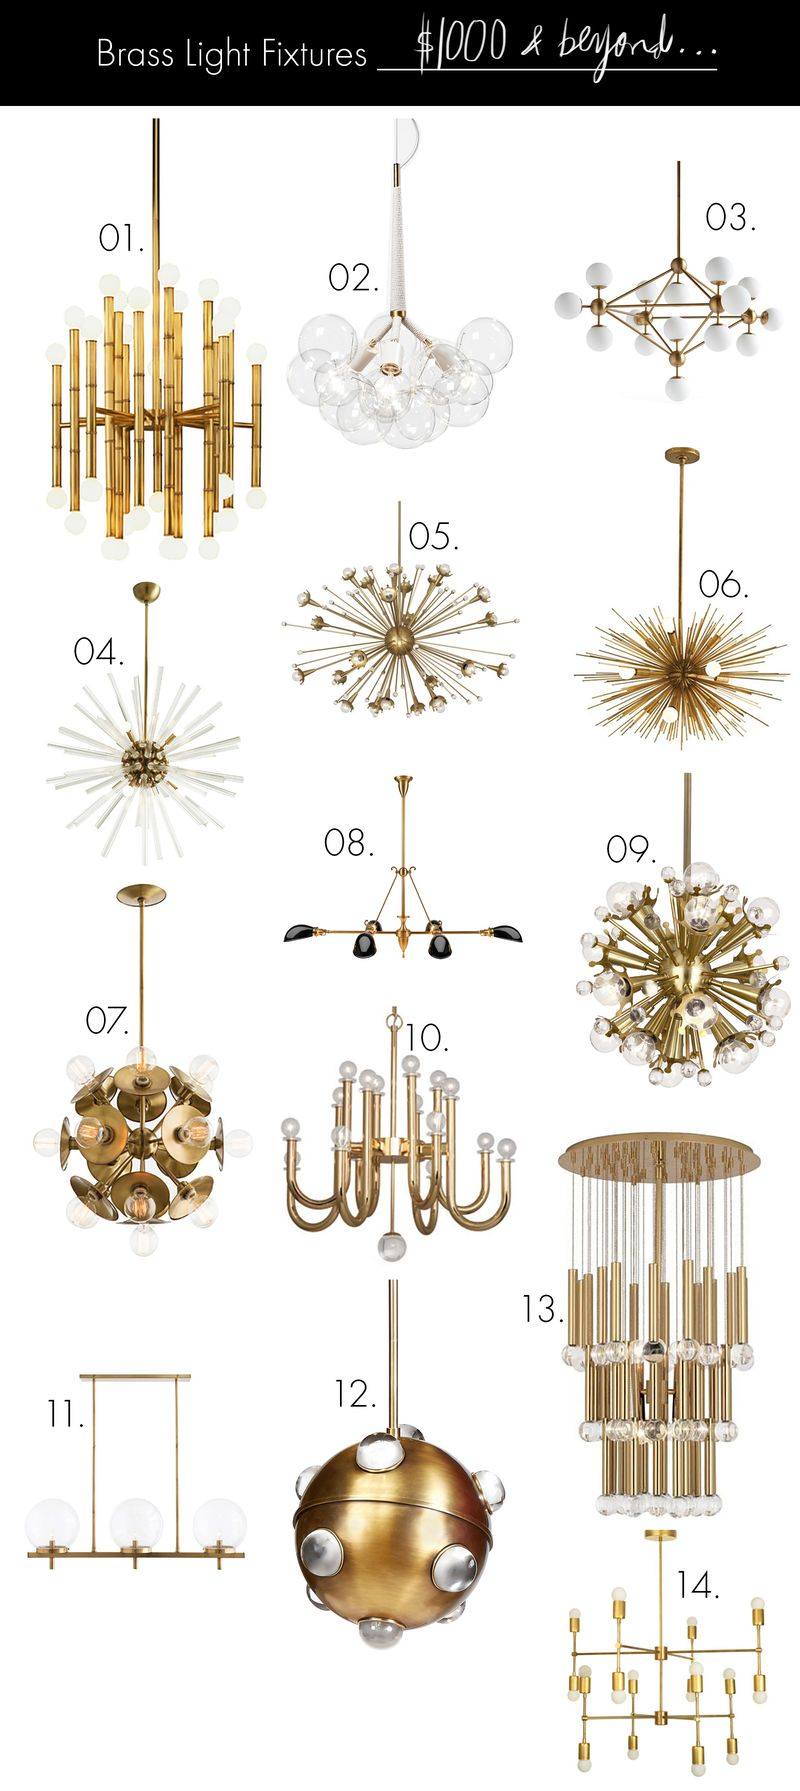 Brass Light Fixtures (on any budget!) $1000 and beyond